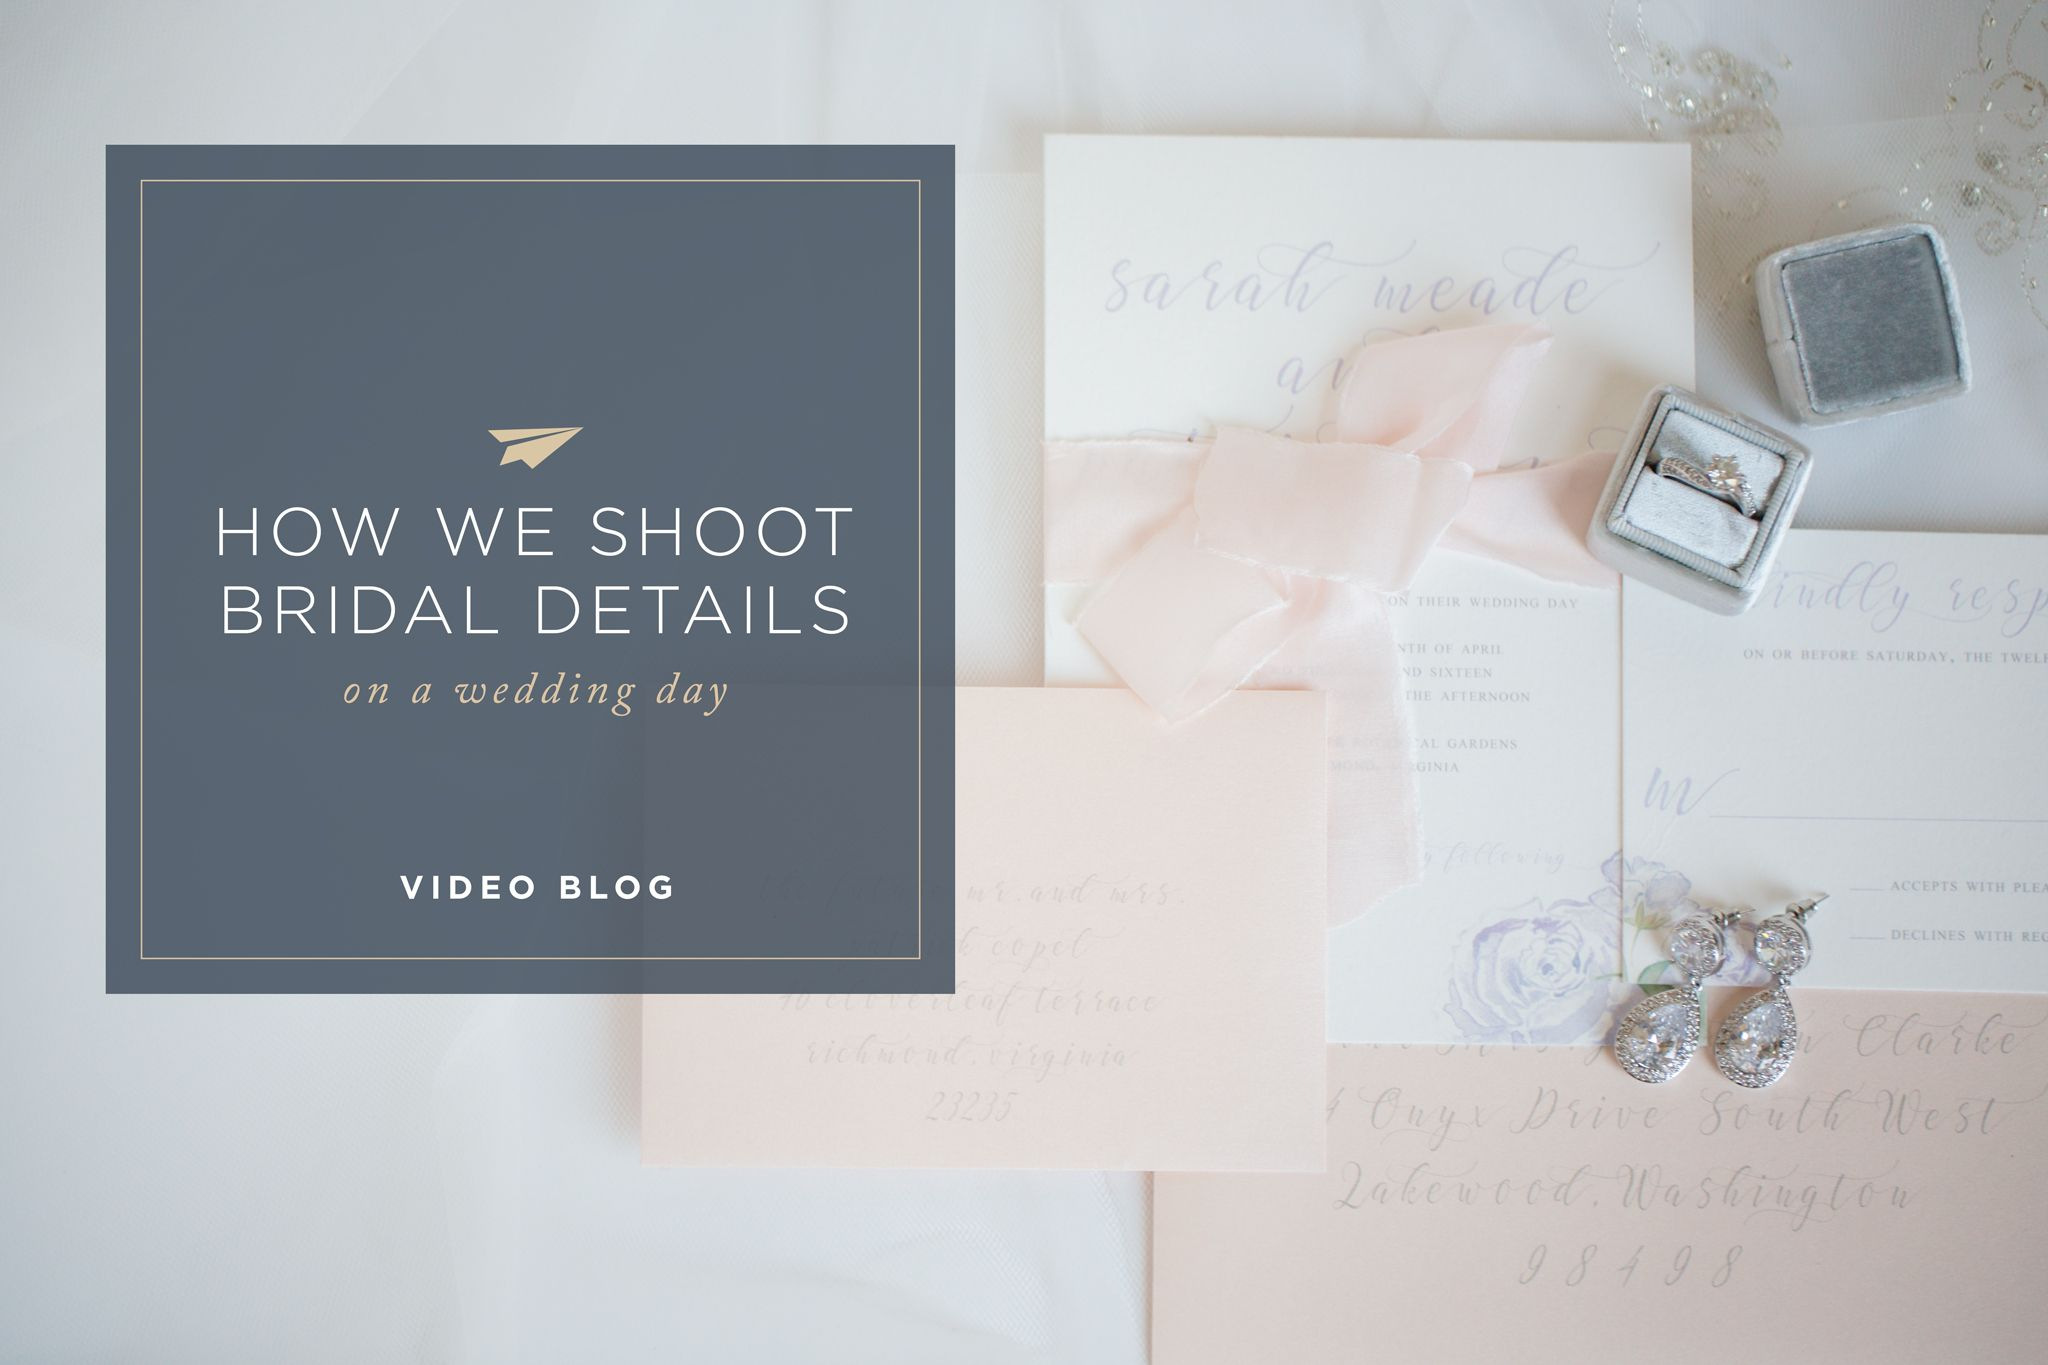 Today We Re Going To Be Sharing With You How We Film Bridal Details On A Wedding Day In This Video Wedding Videography Wedding Videos Wedding Photography Tips